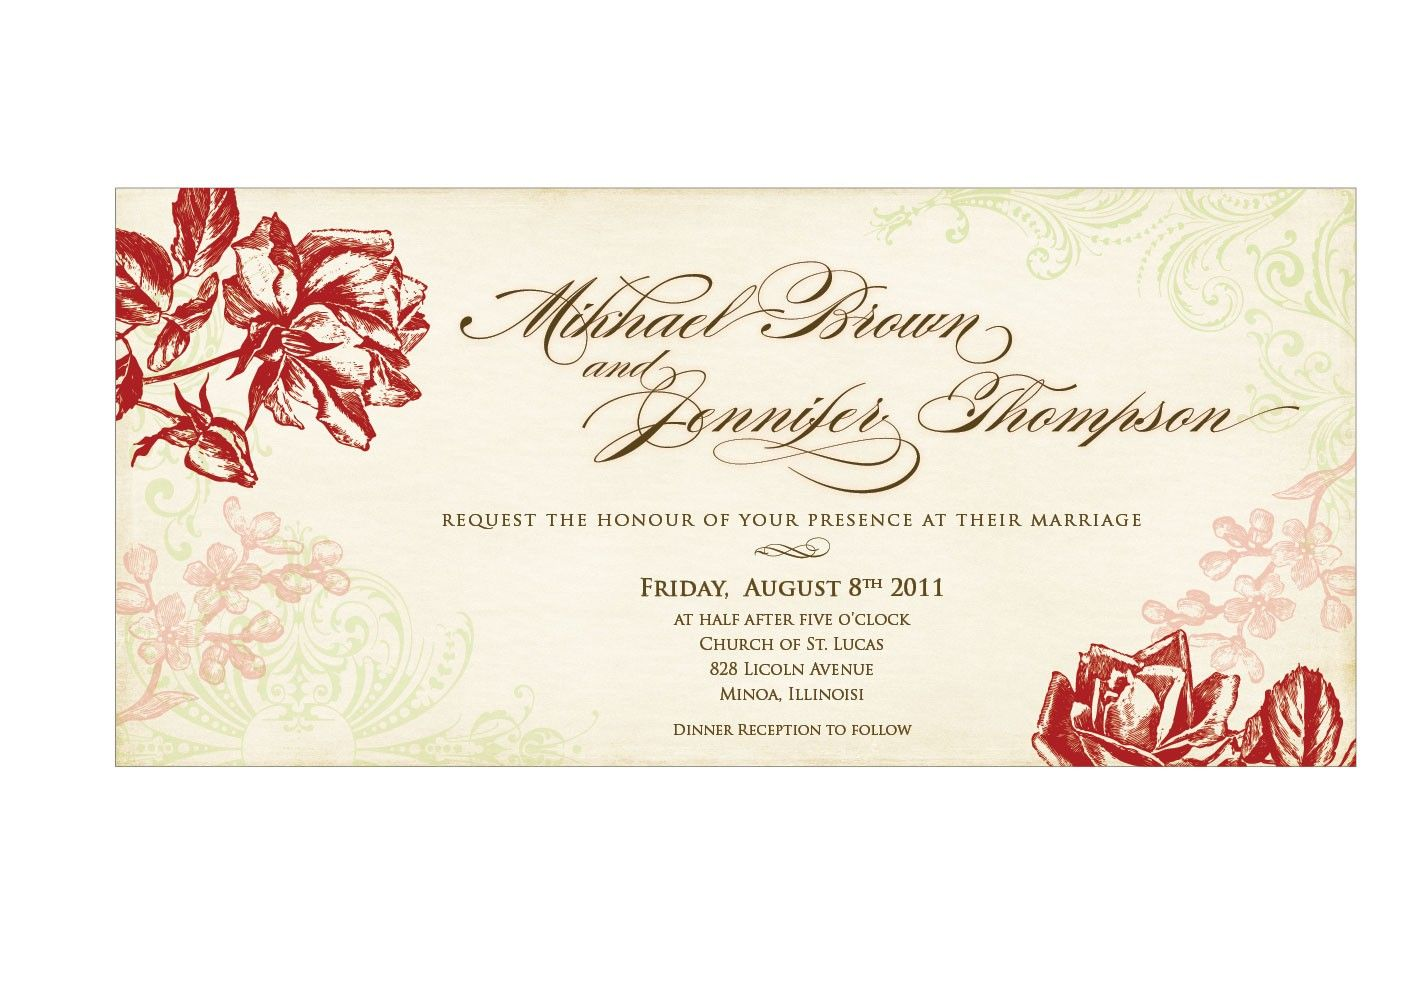 Wedding invitation templates wedding invitation templates wedding invitation templates wedding invitation templates vintage by charisdesignstudio stopboris Image collections